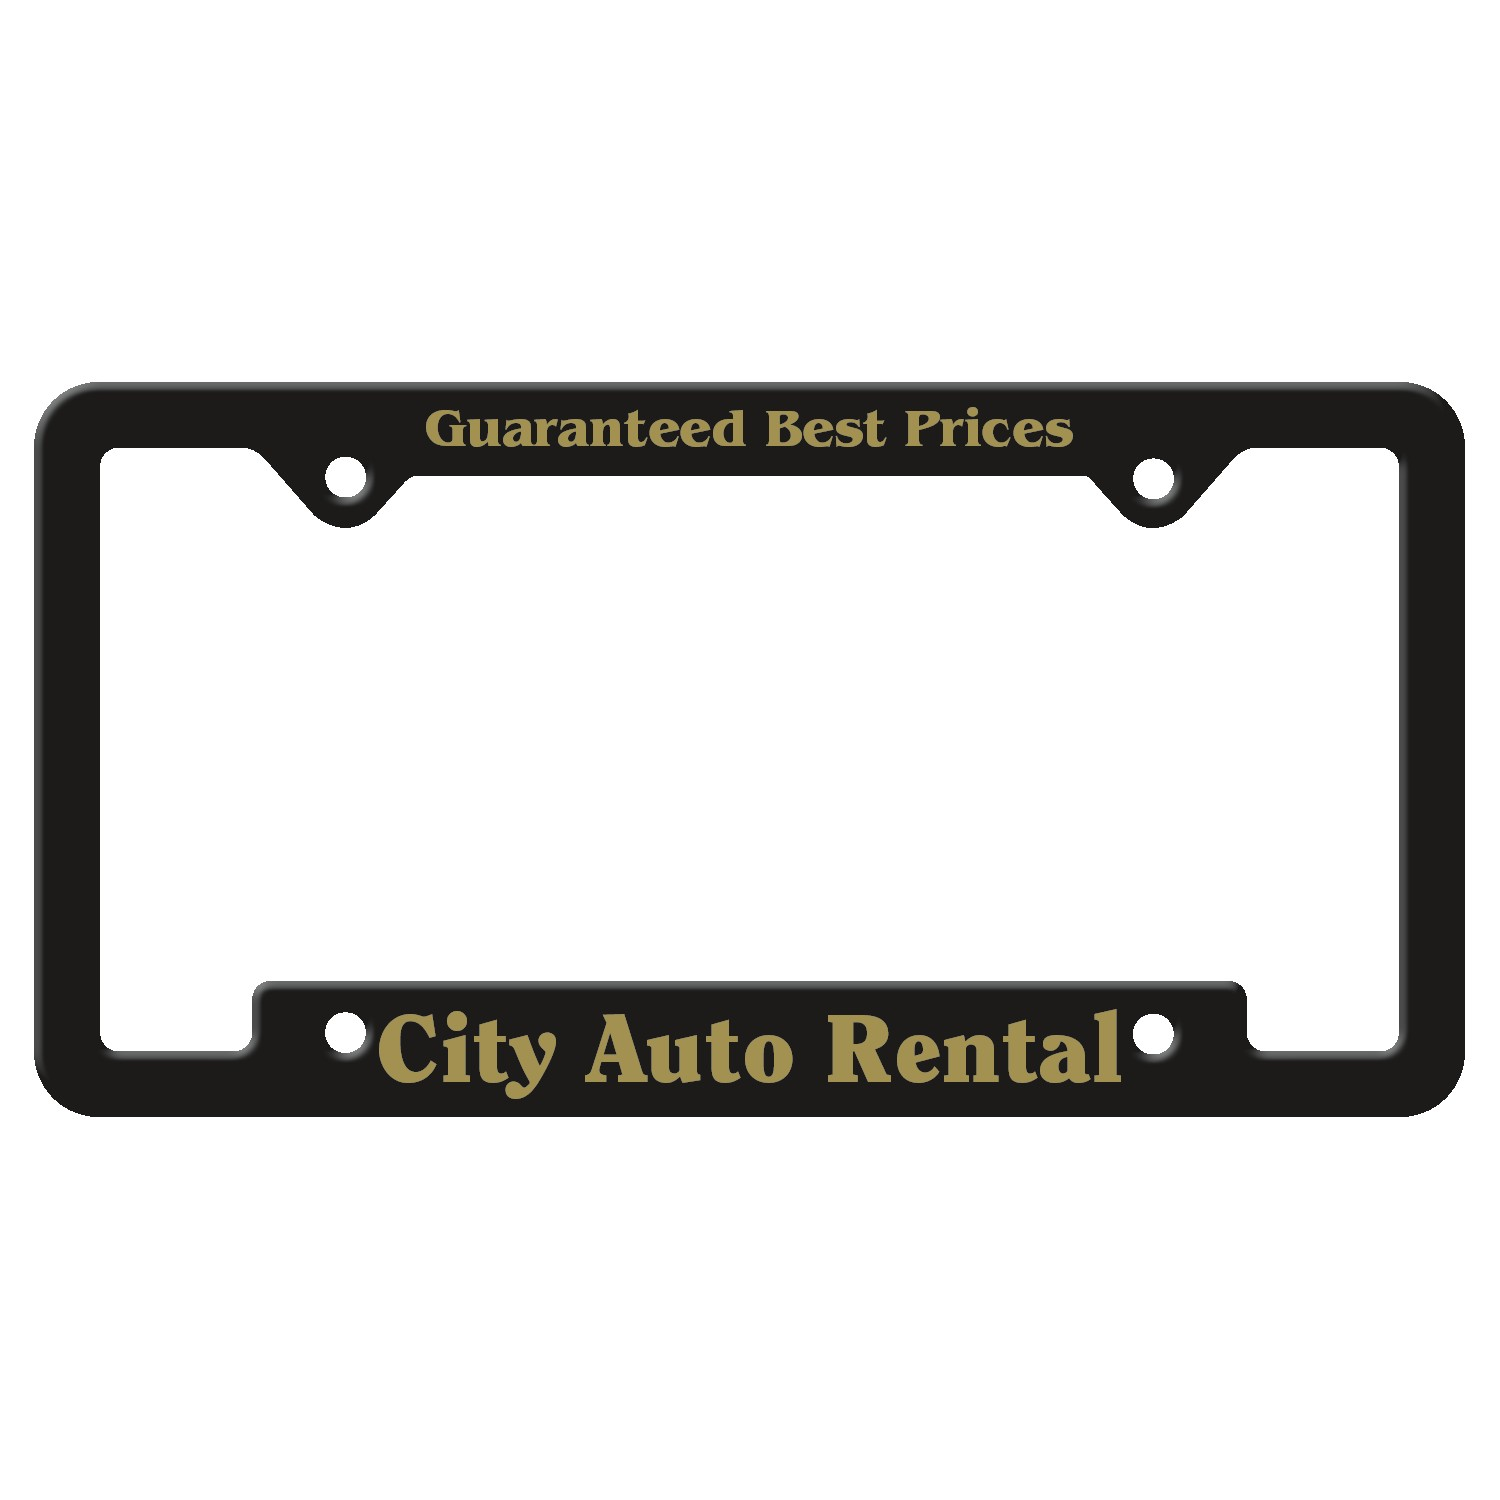 965880761-183 - Black Auto License Frame w/ 4 Holes & Large Bottom Jutted Panel - thumbnail